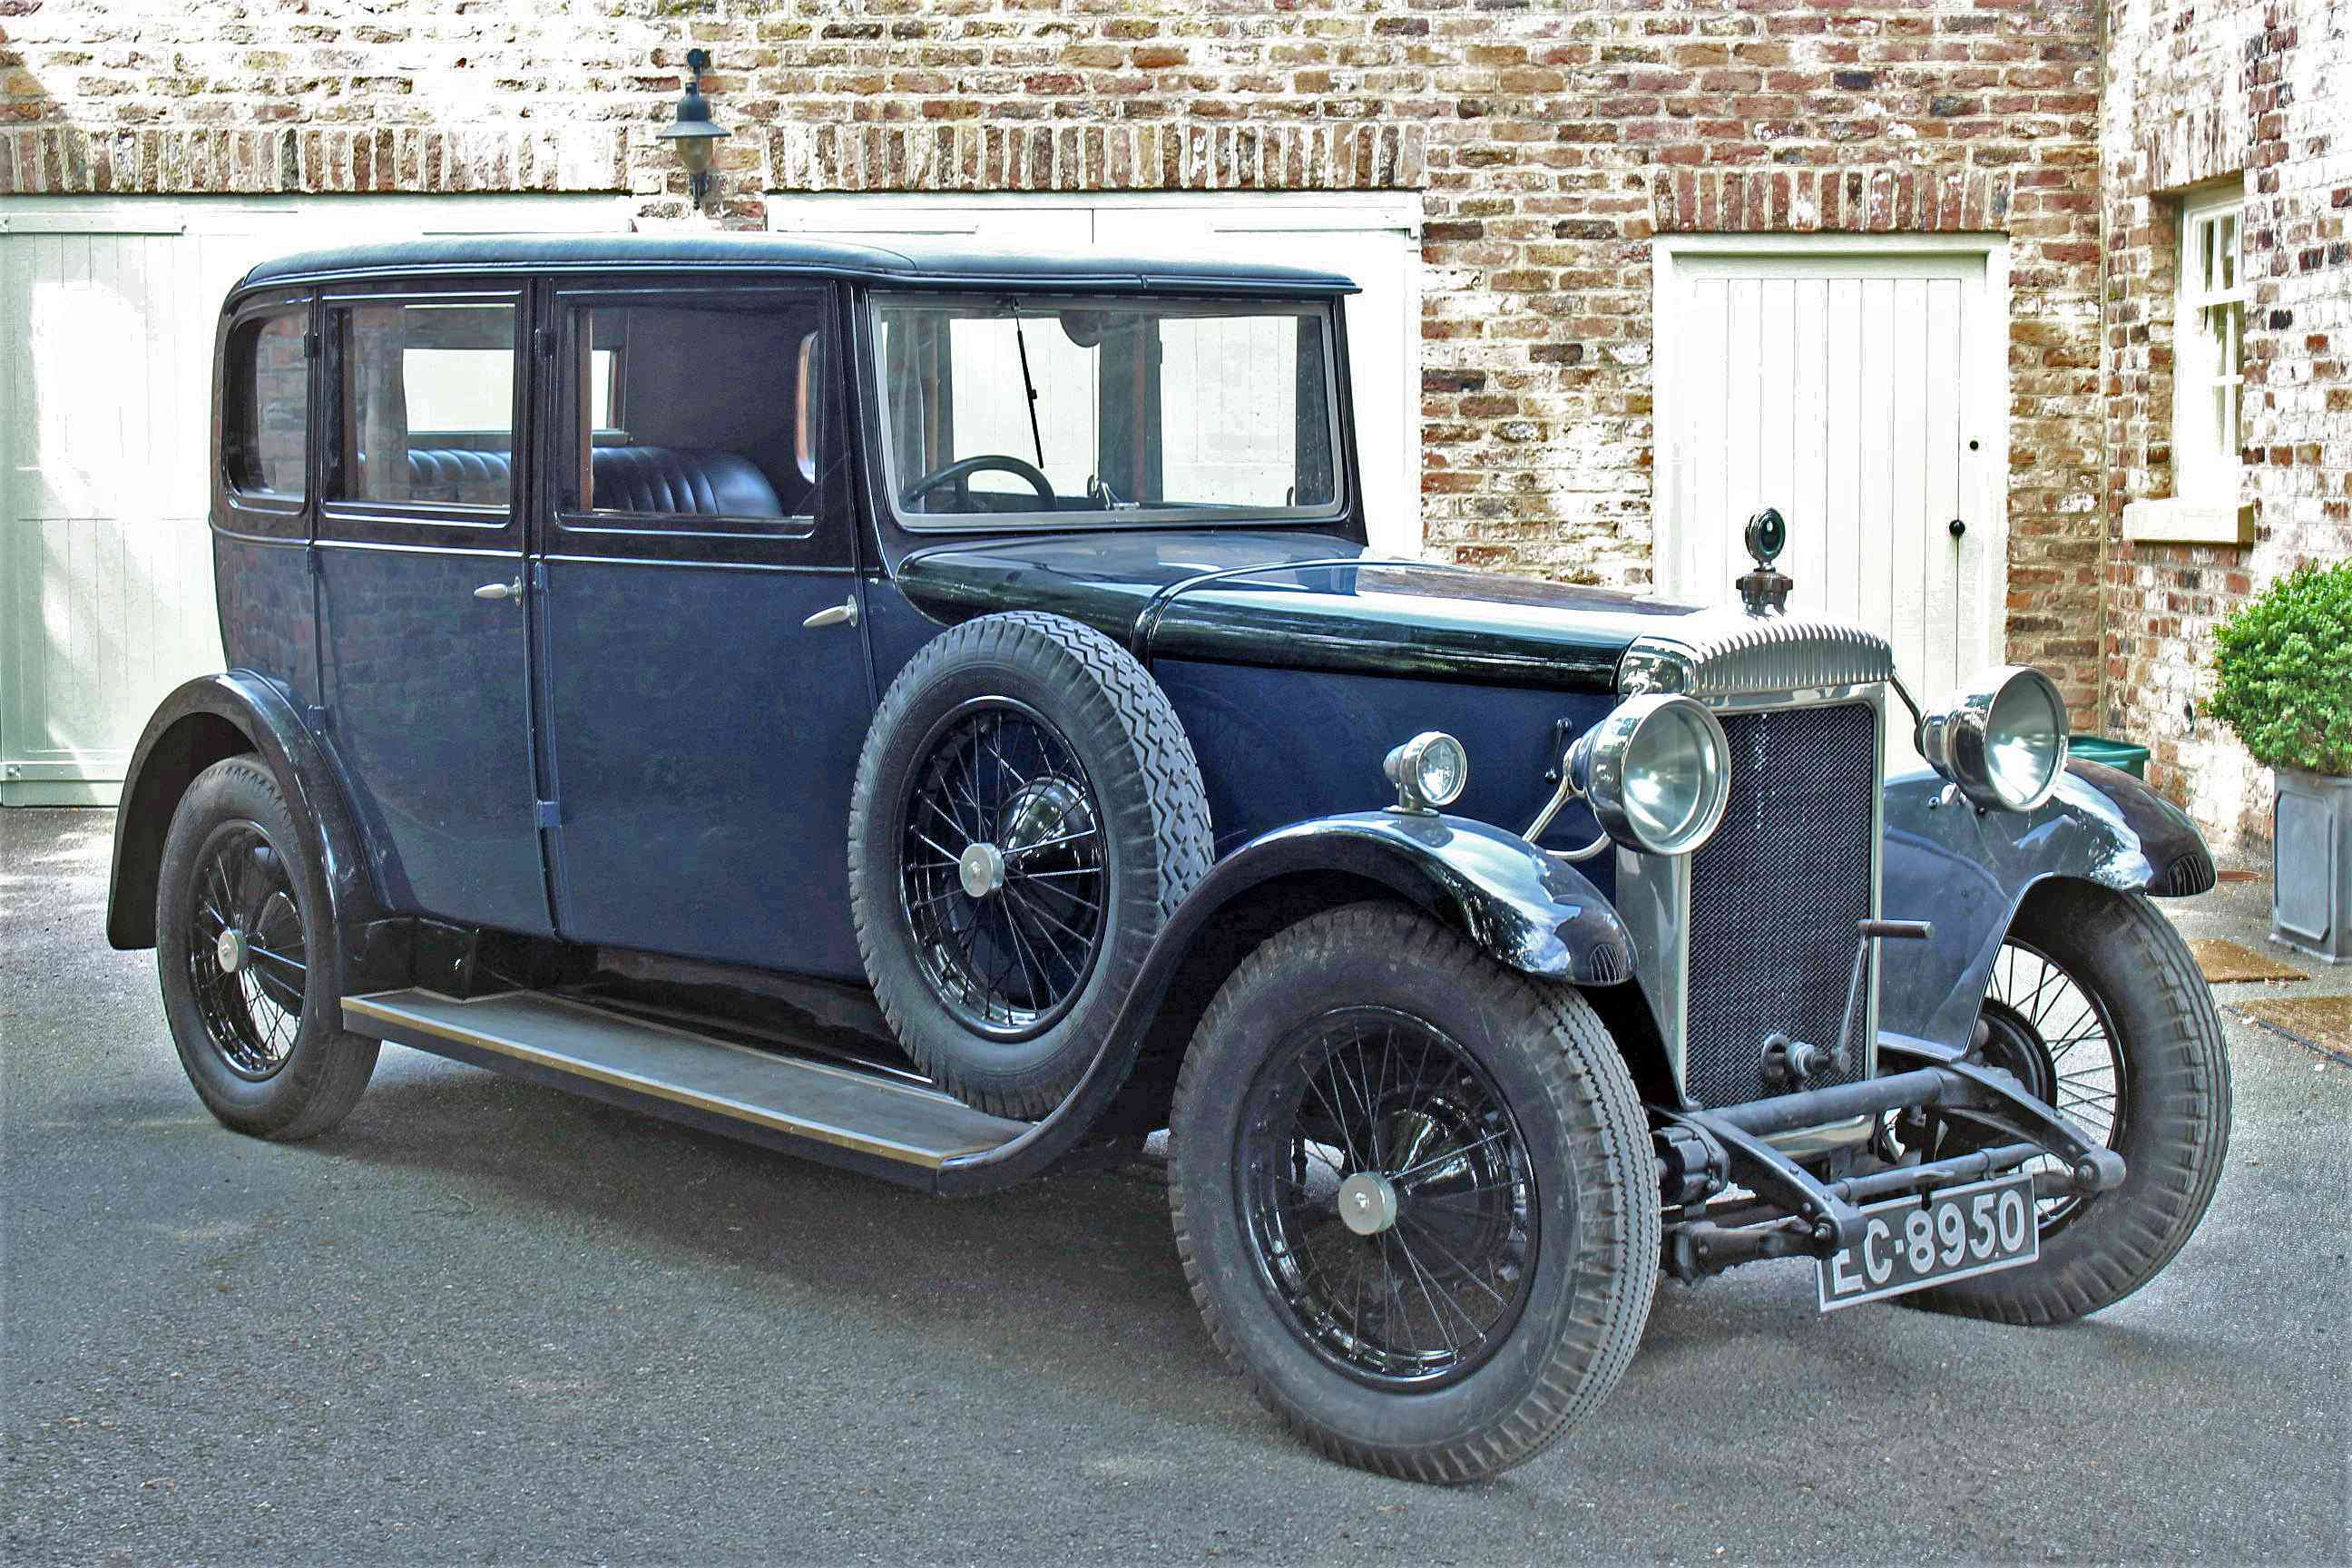 1929 DAIMLER 20/70 TYPE M SALOON Registration: EC8950 Chassis No: 31186 Engine No: 53847 Odometer: - Image 2 of 2